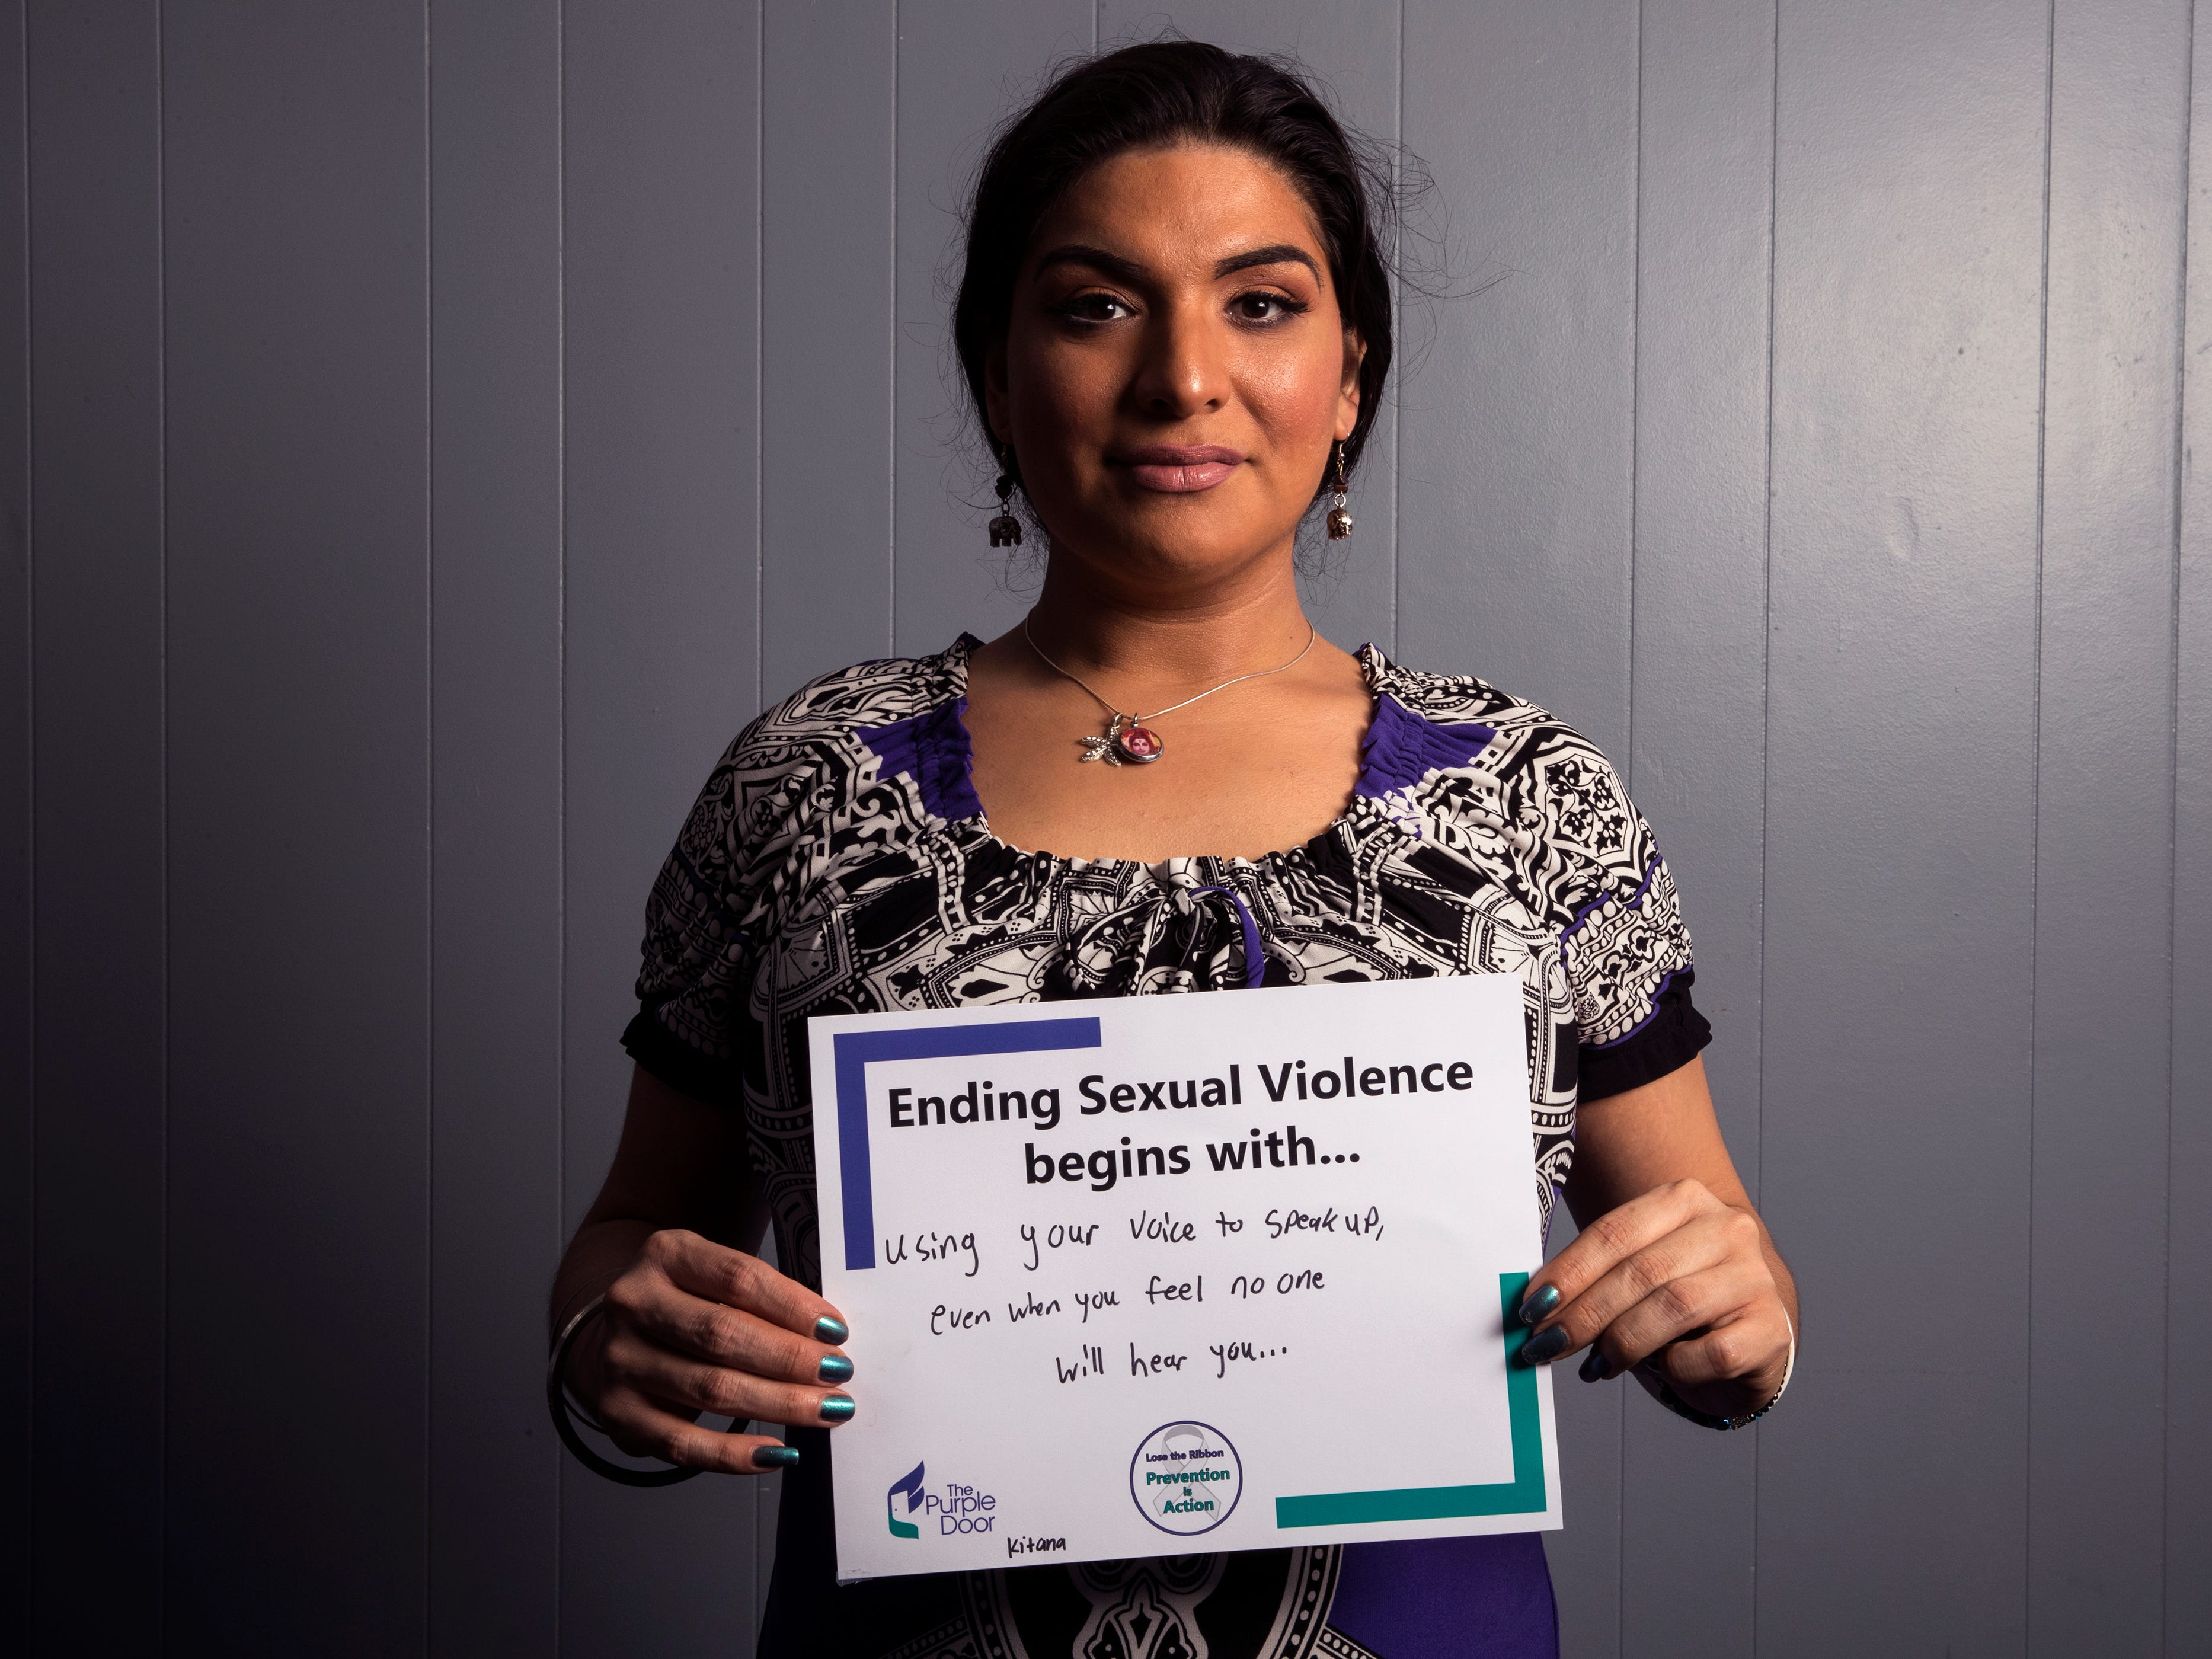 Kitana Sanchez, vice-president of Corpus Christi LGBT, has pledged to use her voice to speak up, even when she feels no one will hear her. She is one of several people to participate in The Purple Door's campaign for April's Sexual Assault Awareness Month, which encourages people to take action against sexual assault and violence.